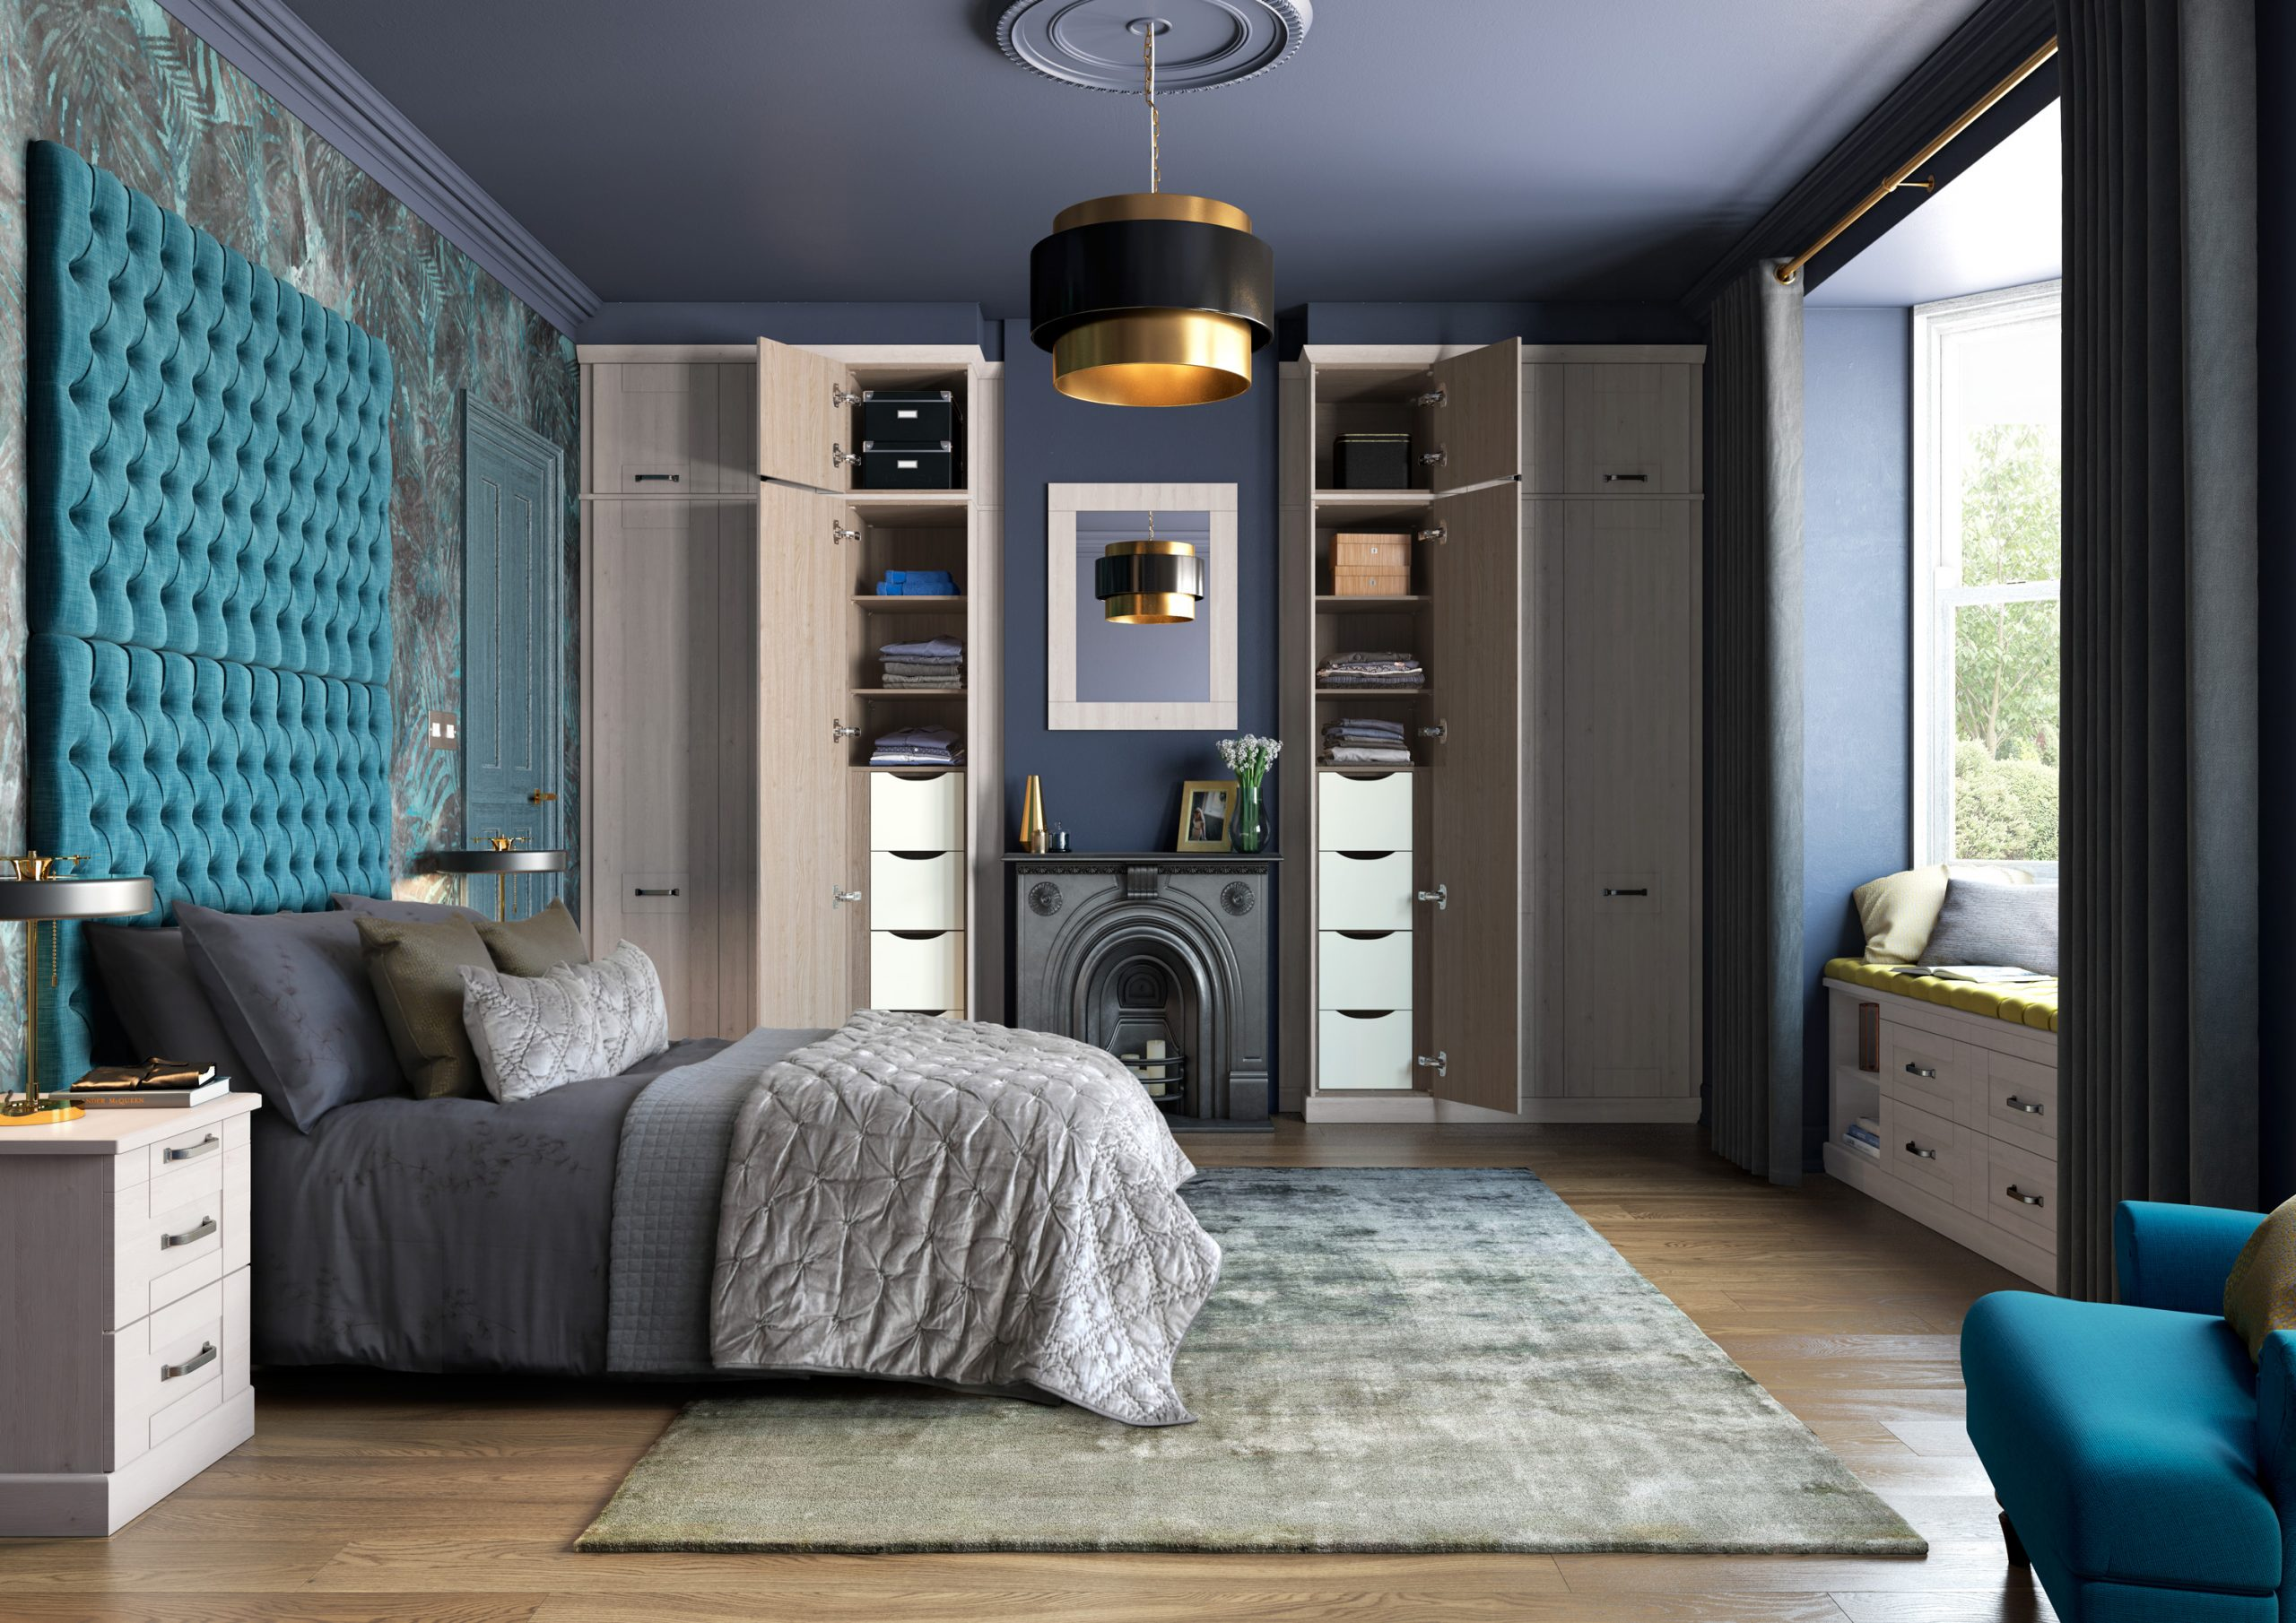 Bedroom with sliding wardrobe doors